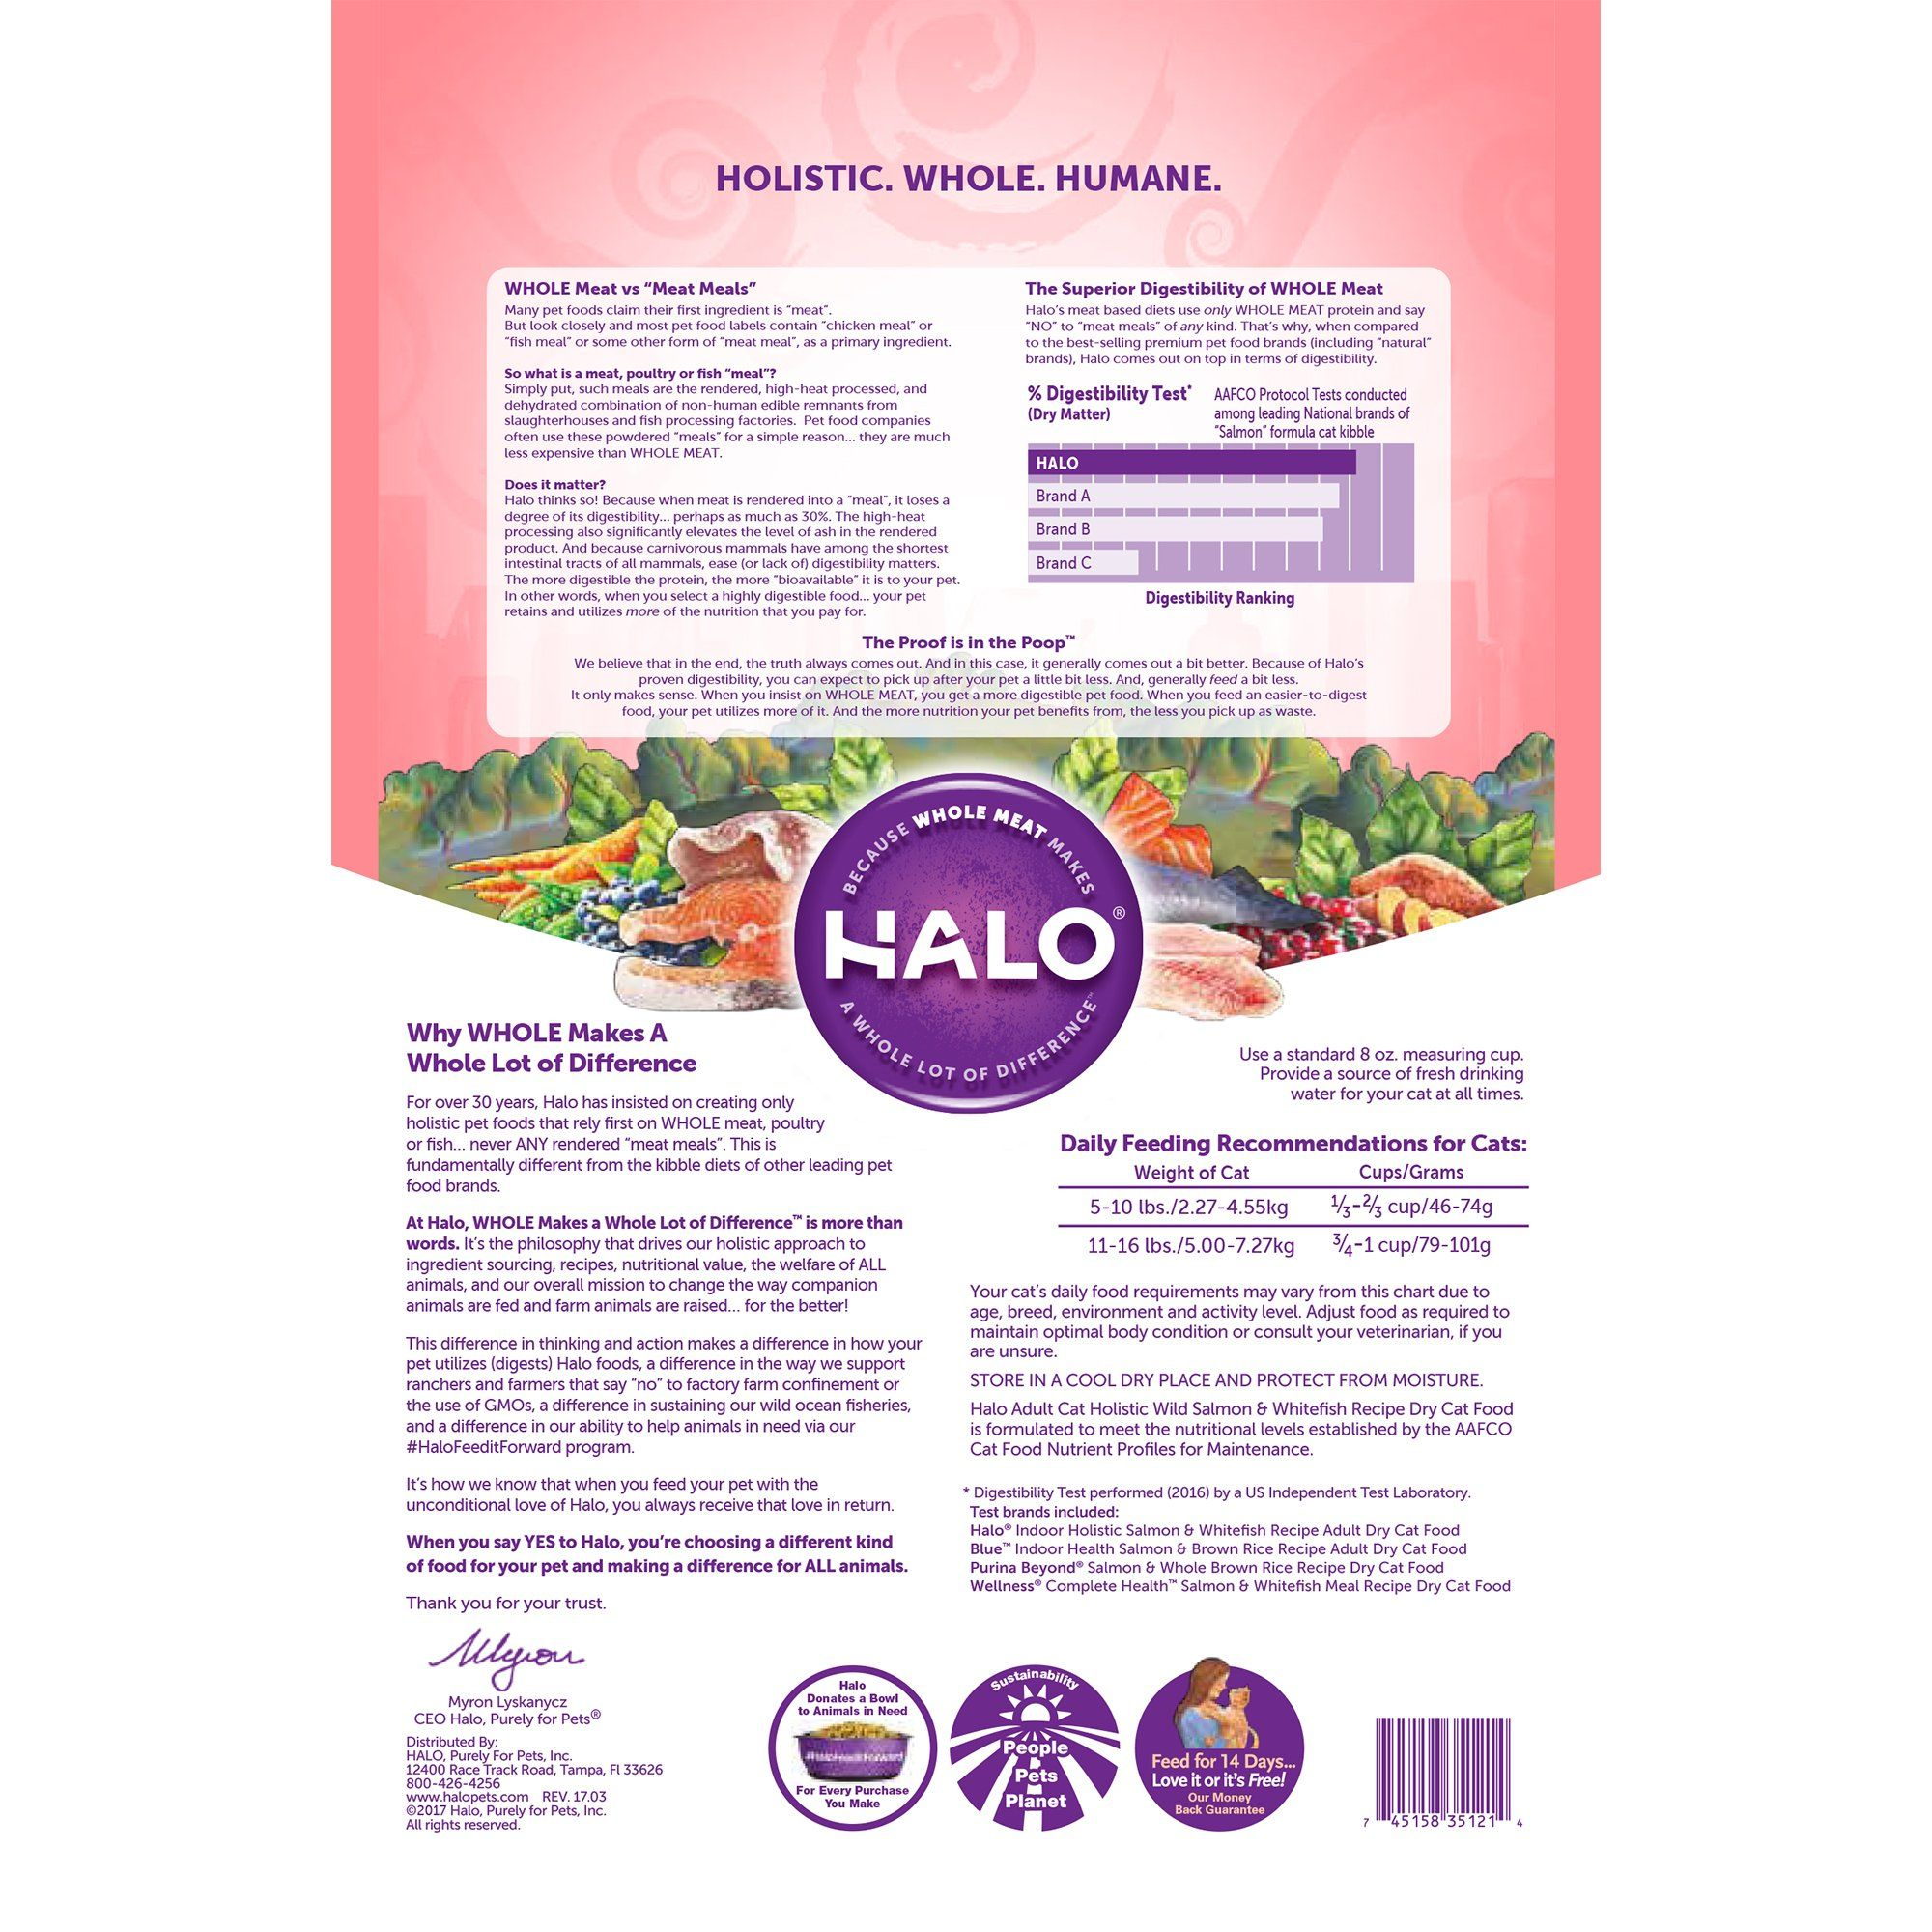 Halo Holistic Dry Cat Food Wild Salmon And Whitefish Recipe 11 5 Lb Bag Of Natural Cat Food More Info C Grain Free Dog Food Dry Cat Food Small Breed Dog Food